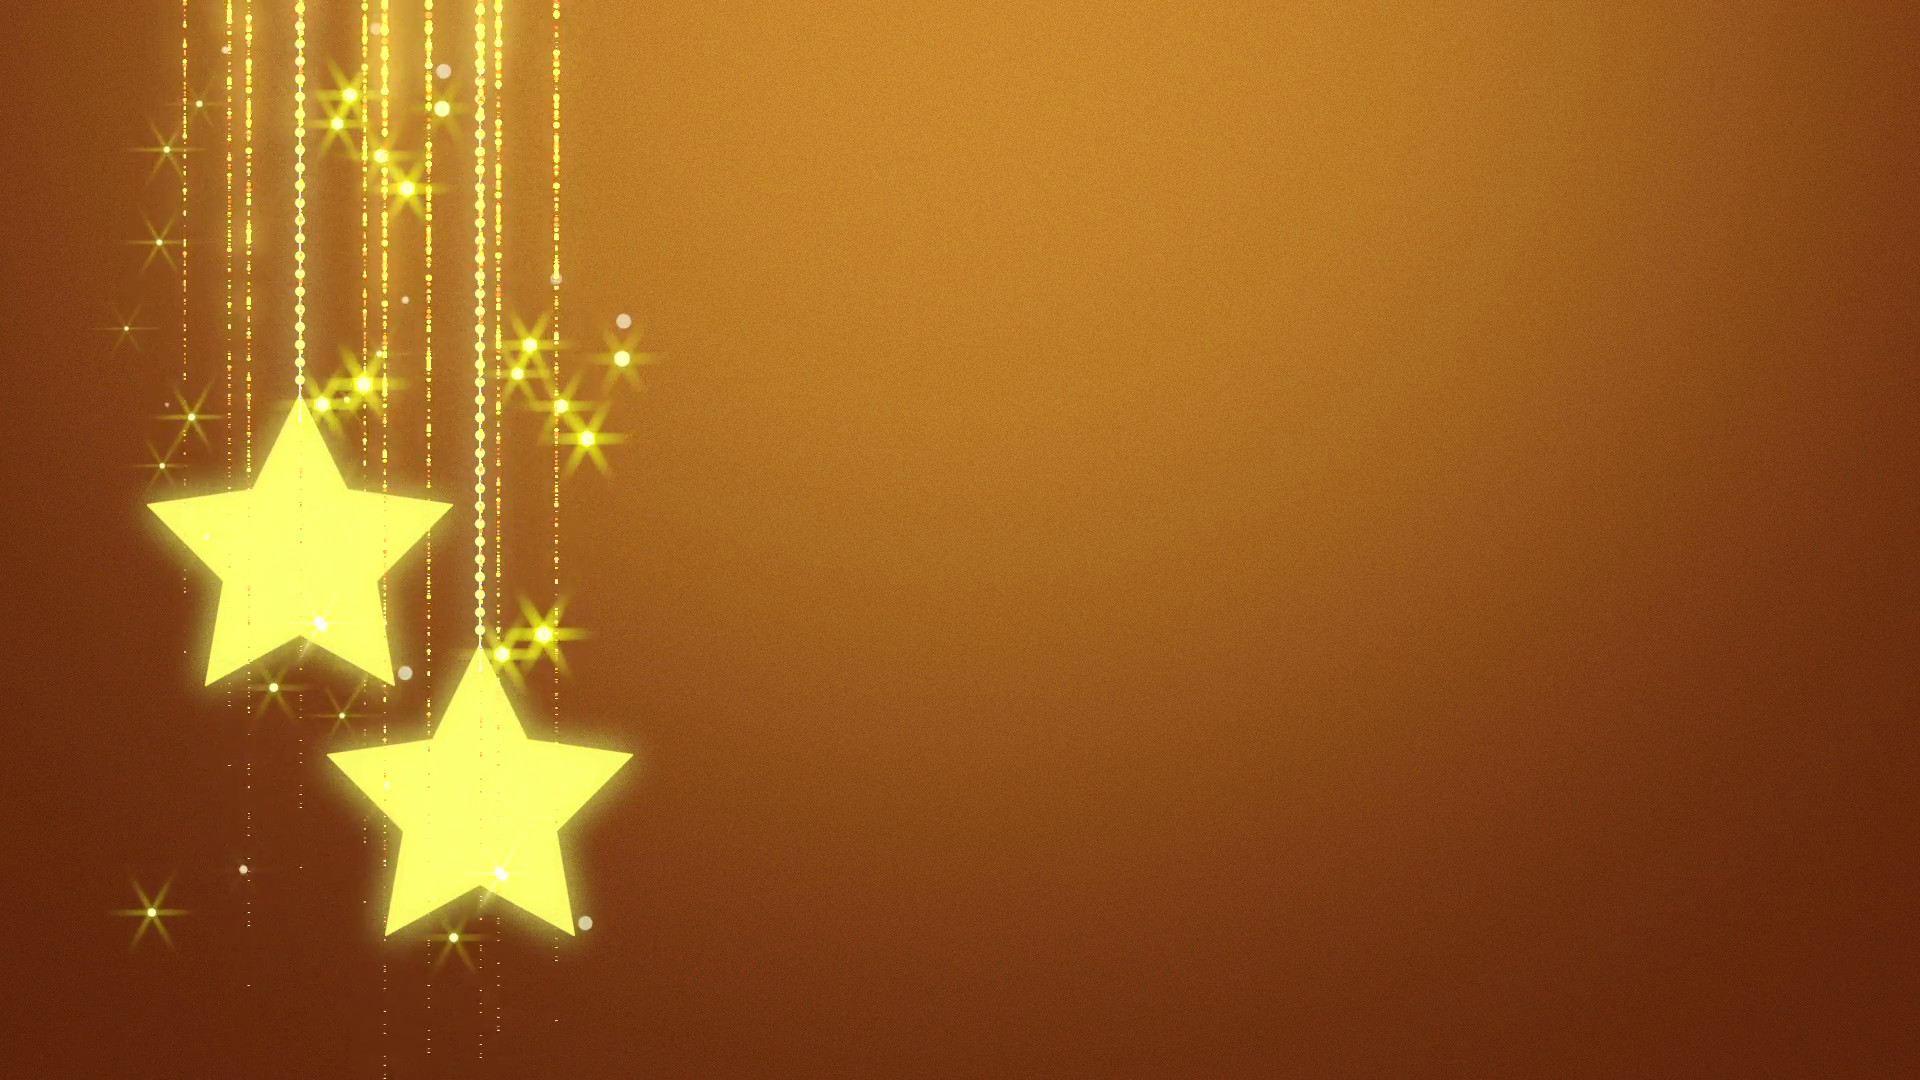 Aaron Rodgers Iphone Wallpaper Christmas Star Background 183 ①